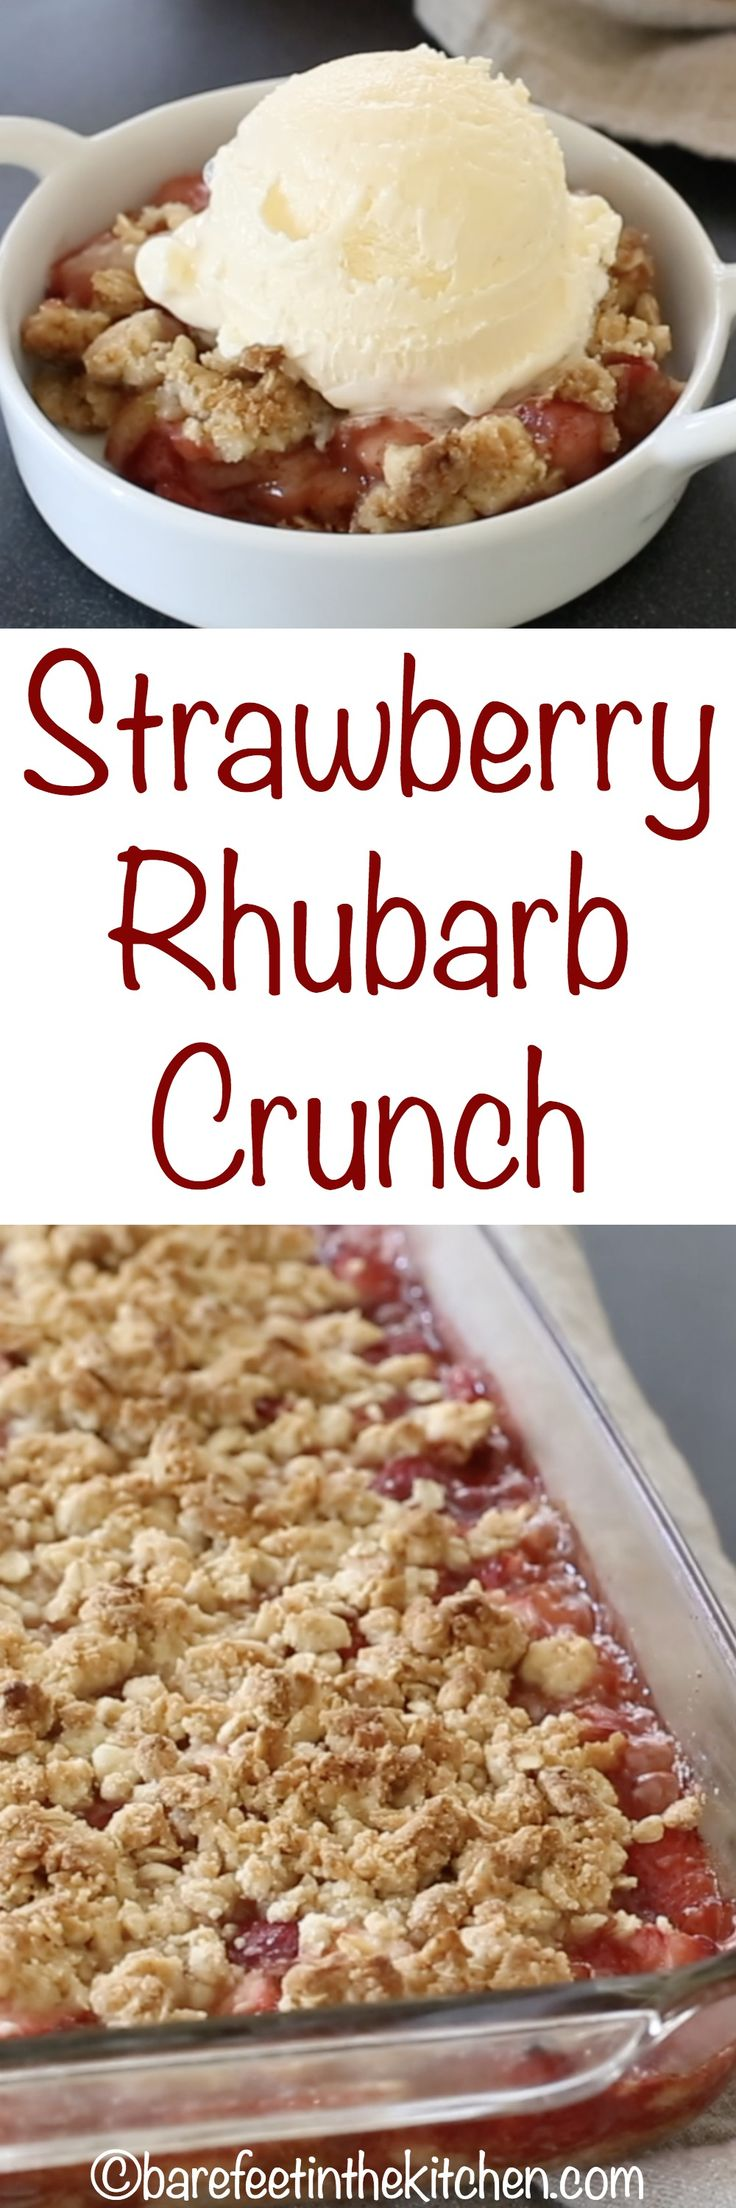 Strawberry Rhubarb Crunch  - get the recipe at barefeetinthekitchen.com (Baking Desserts Gluten Free)